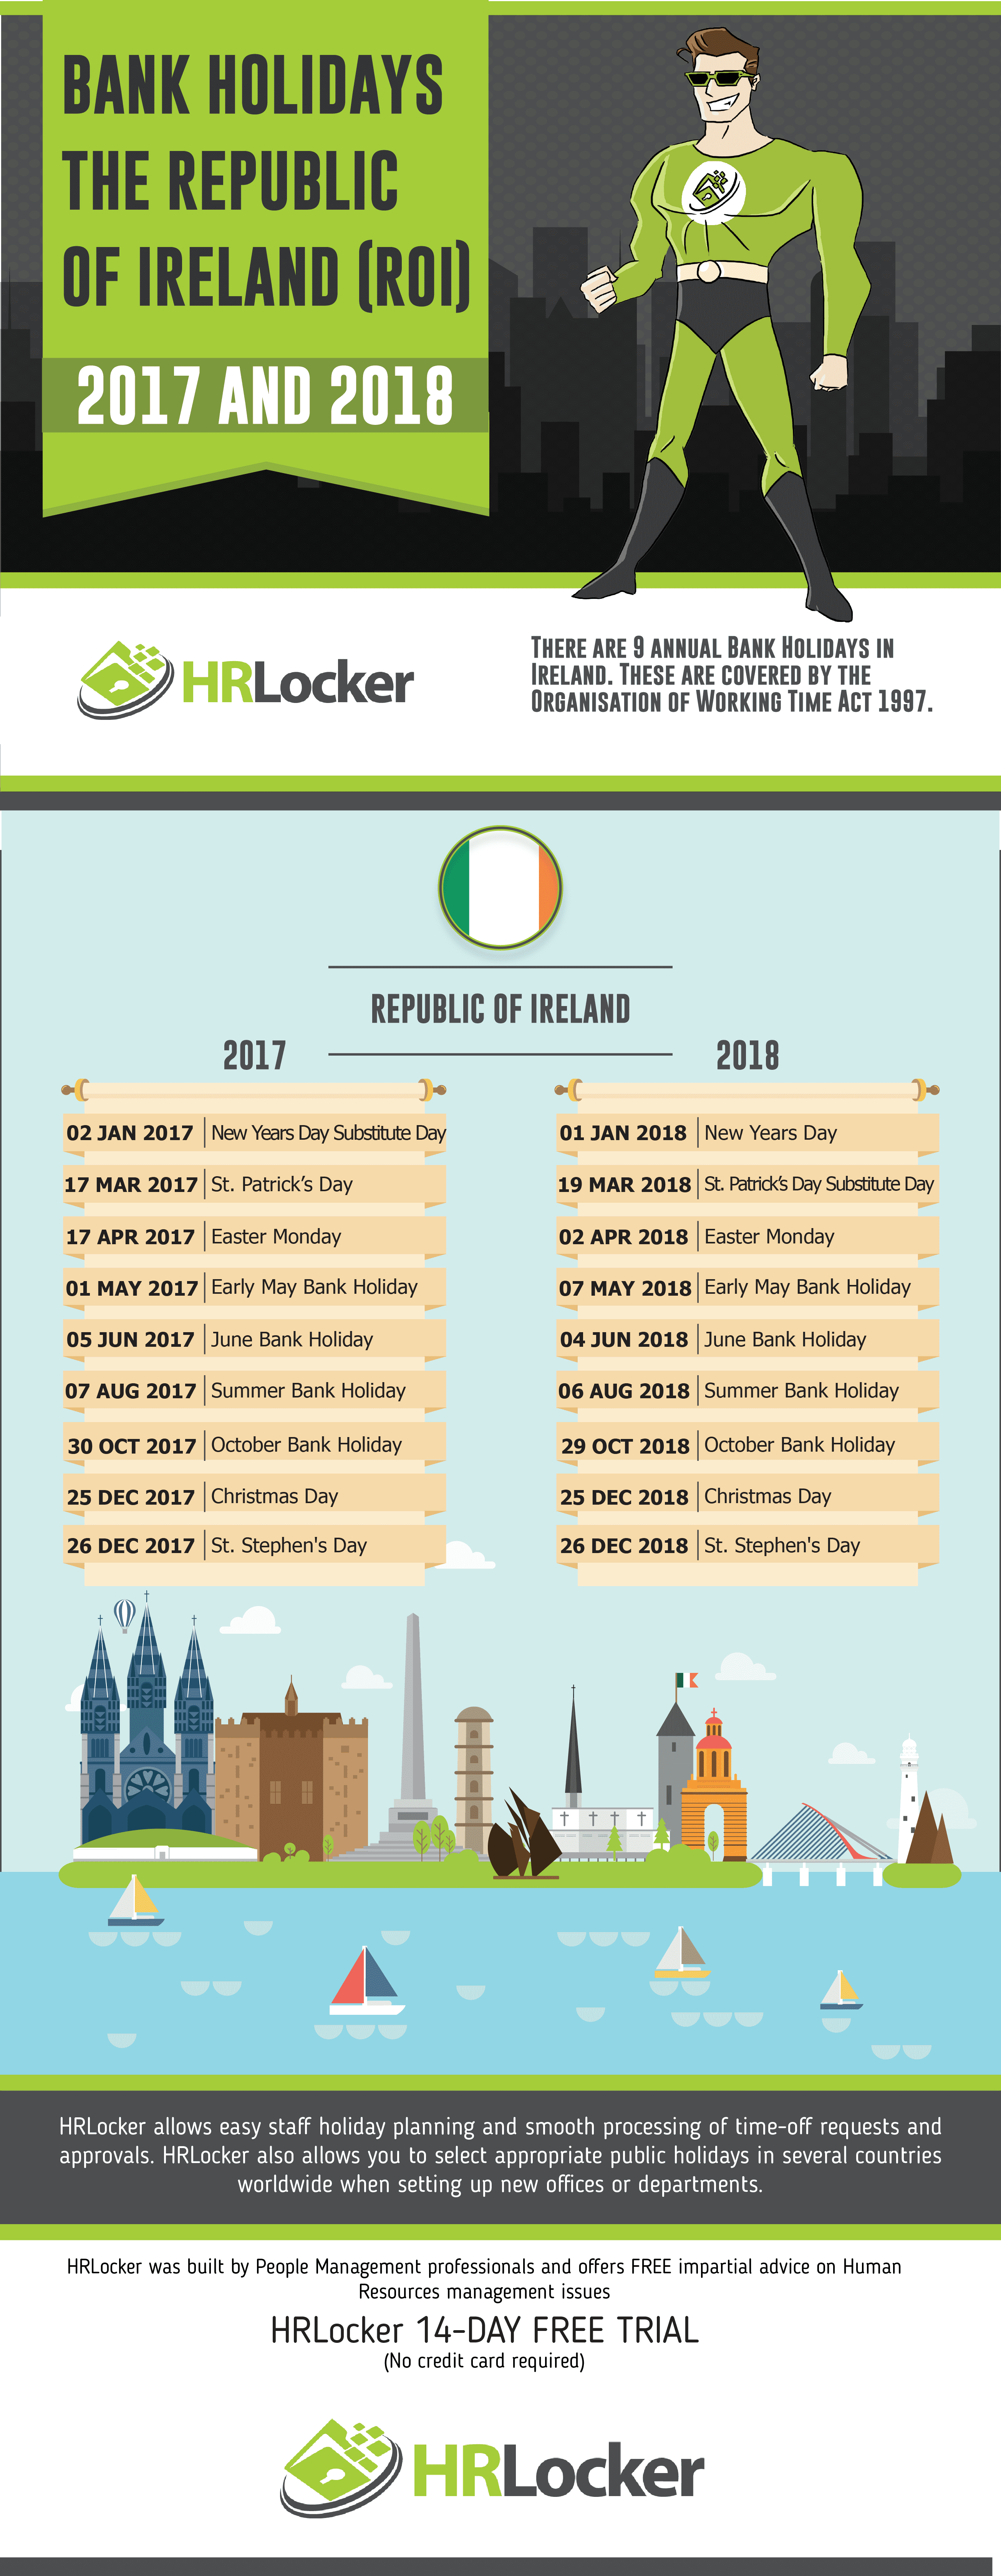 An infographic listing the Republic of Ireland 2017 and 2018 bank Holiday dates